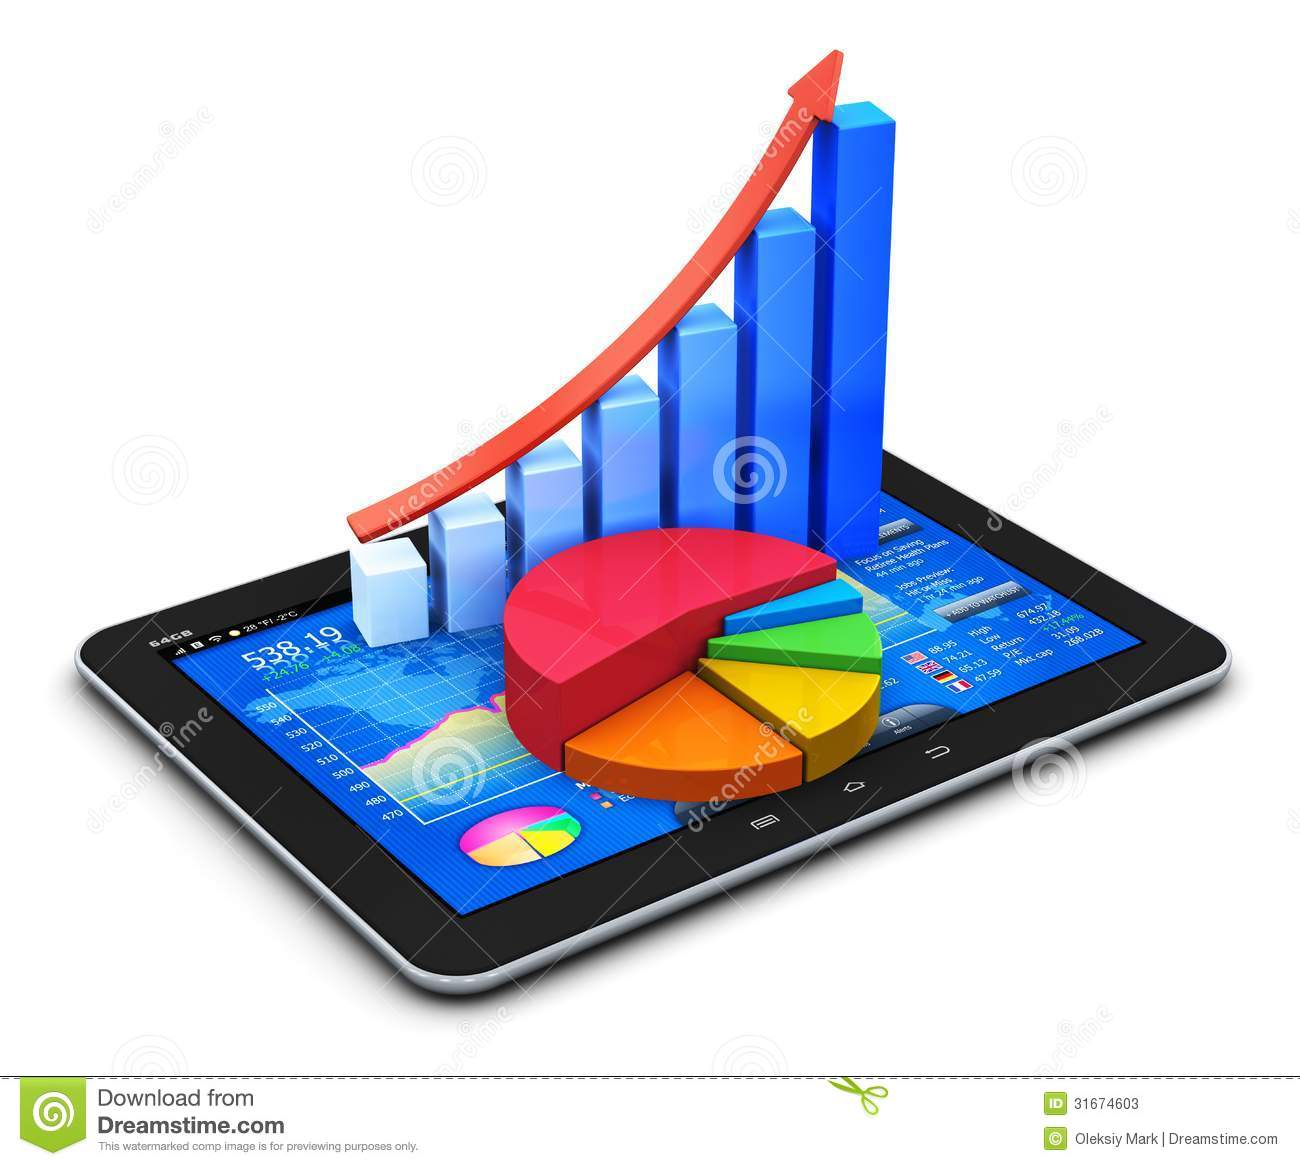 Mobile Finance And Statistics Concept Stock Illustration - Image: 31674603